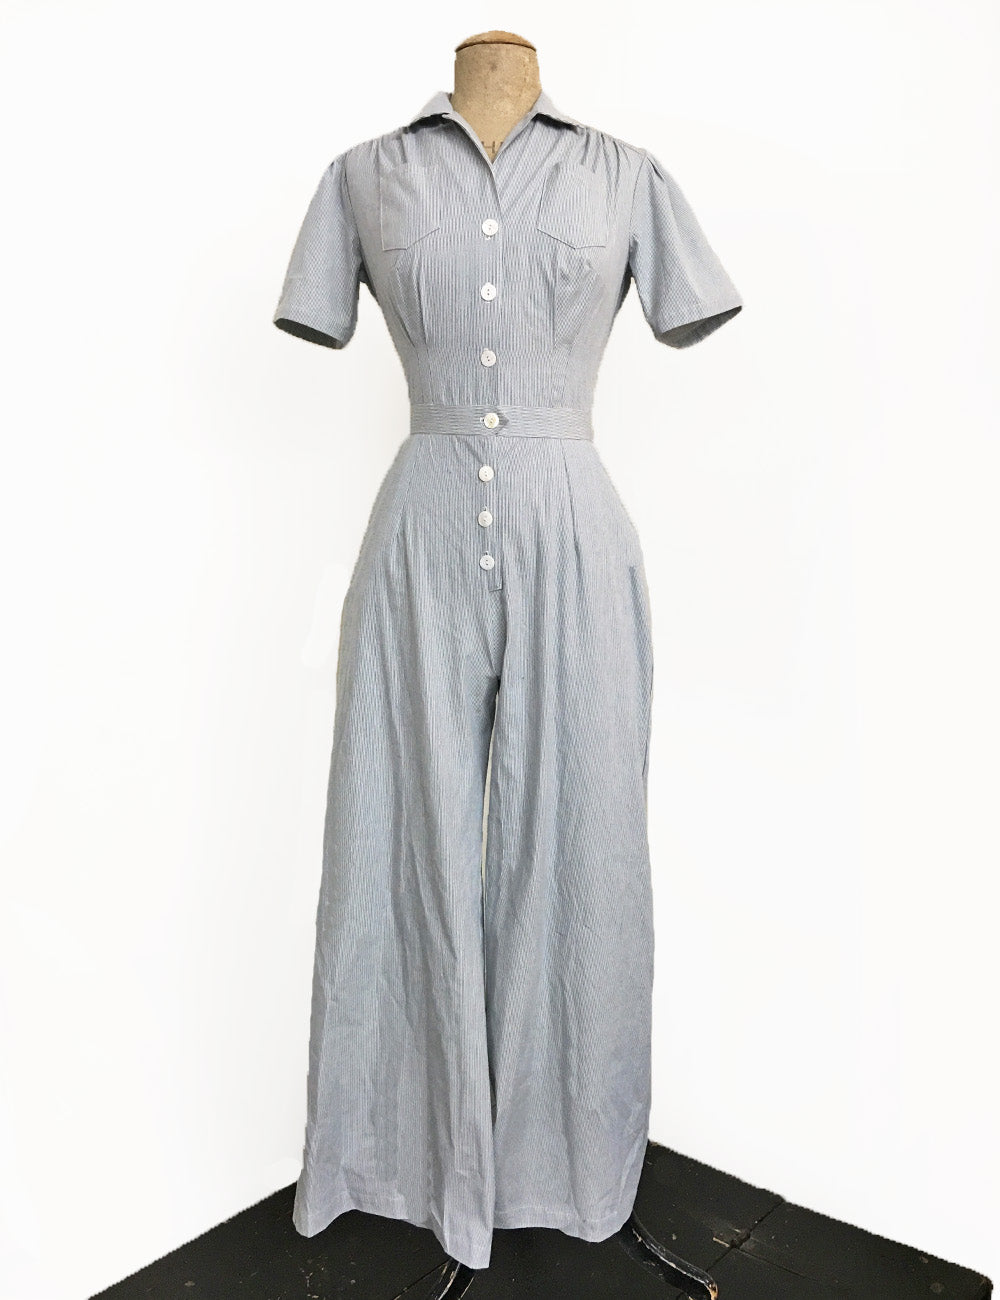 PREORDER - Scout for Loco Lindo Railroad Stripe Pacific 1940s Coveralls